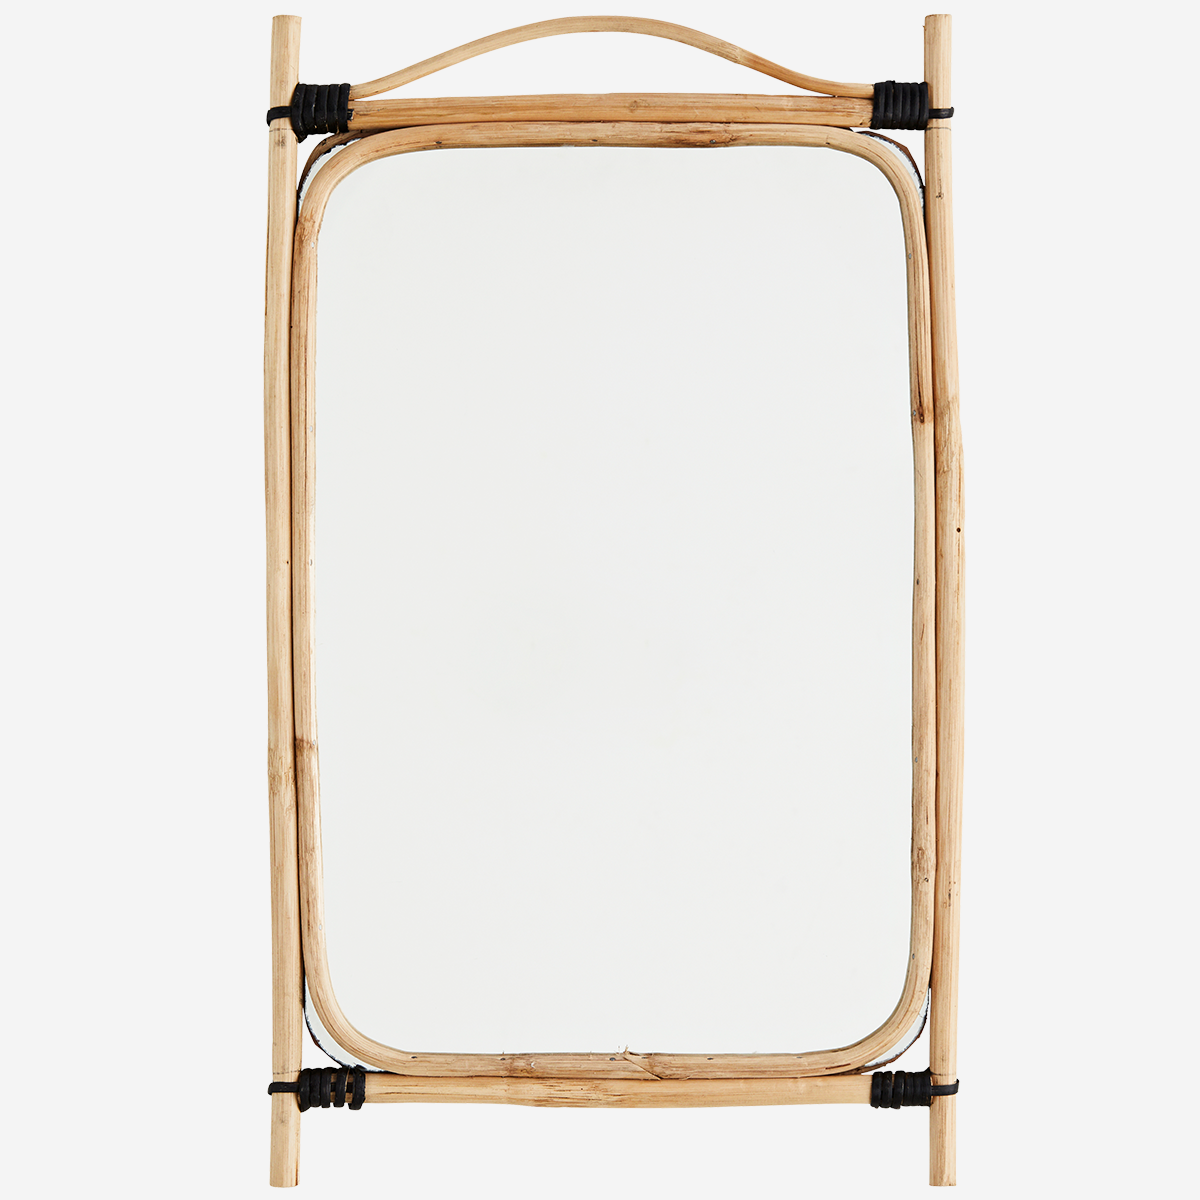 Rectangular Mirror With Bamboo Frame 34x56 cm - Madam Stoltz